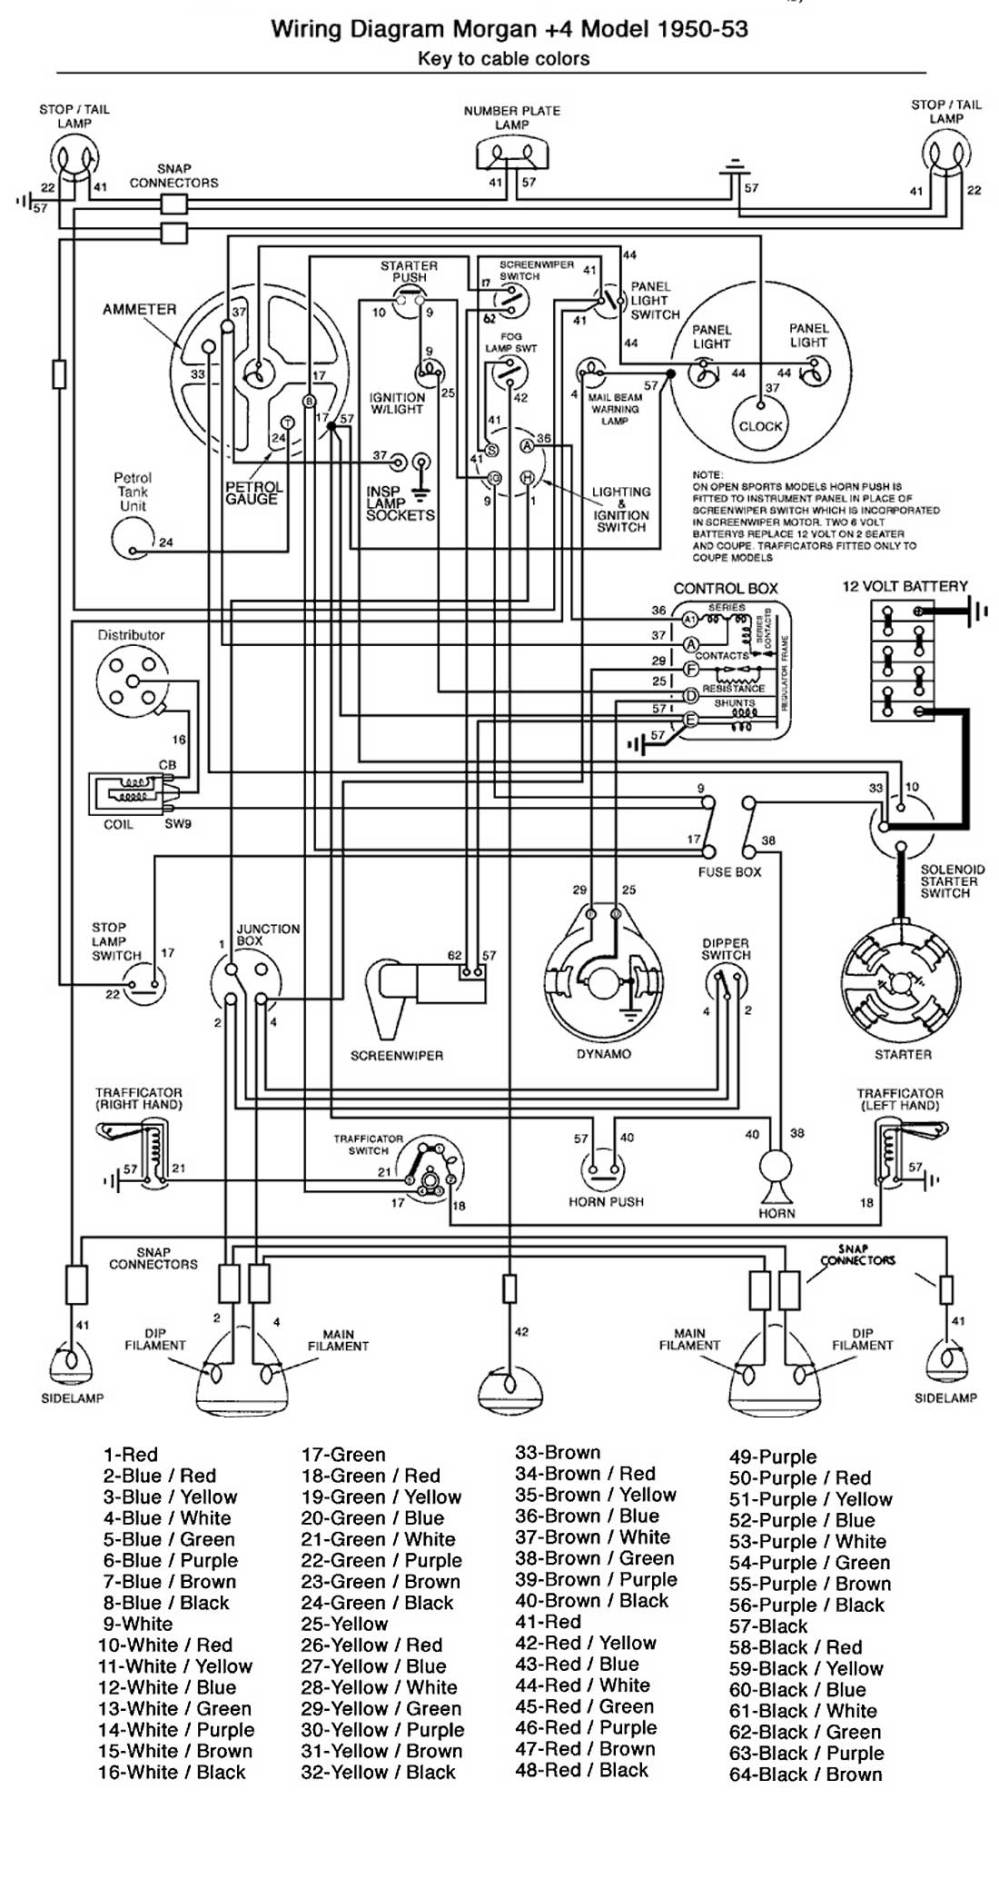 medium resolution of 8 circuit wiring diagram wiring diagram home generac 8 circuit automatic transfer switch wiring diagram 8 circuit wiring diagram